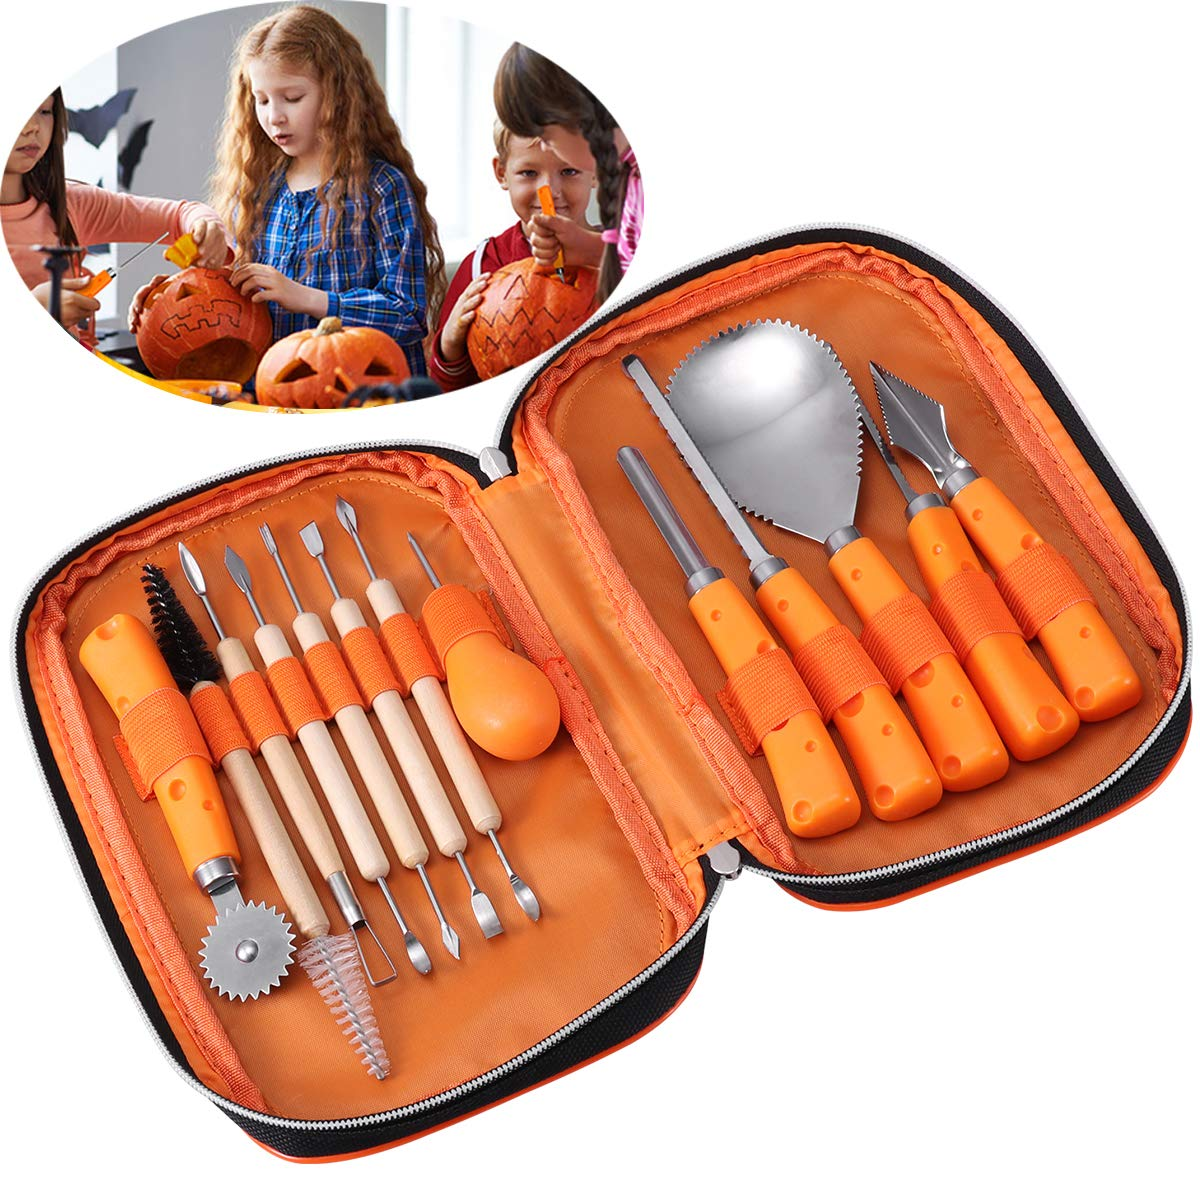 iBaseToy Halloween Pumpkin Carving Tools Kit, 13 Pieces Professional Pumpkin Carving Kit Includes Wooden Sculpture Knife, Easily Carve Jack-O-Lantern (with Storage Bag) by iBaseToy